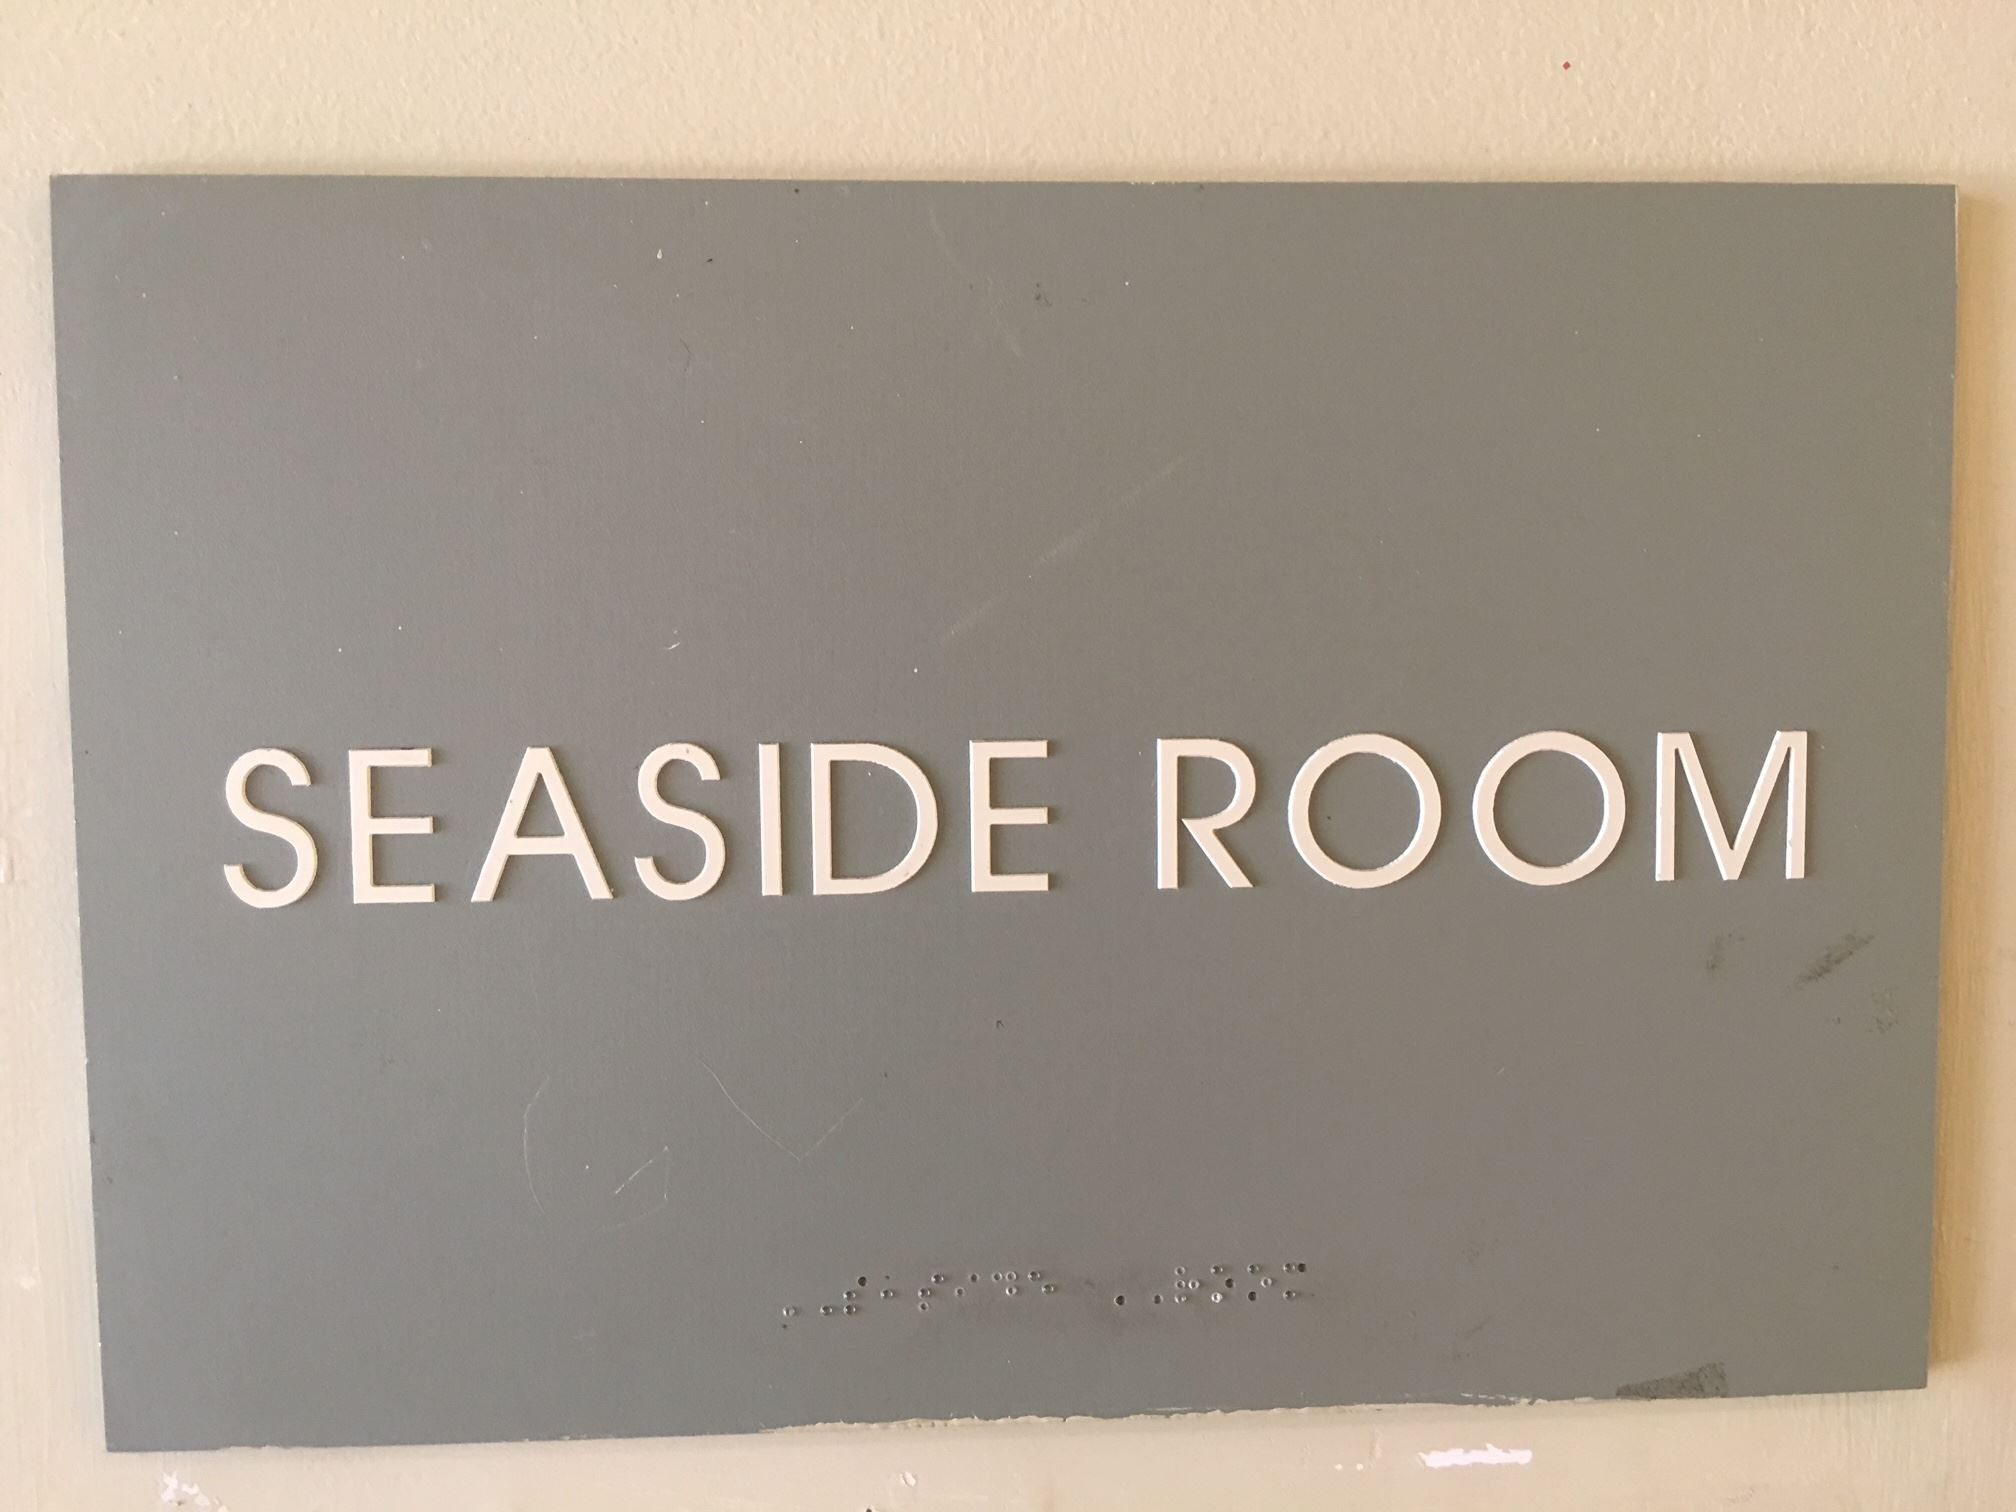 Seaside Room Sign